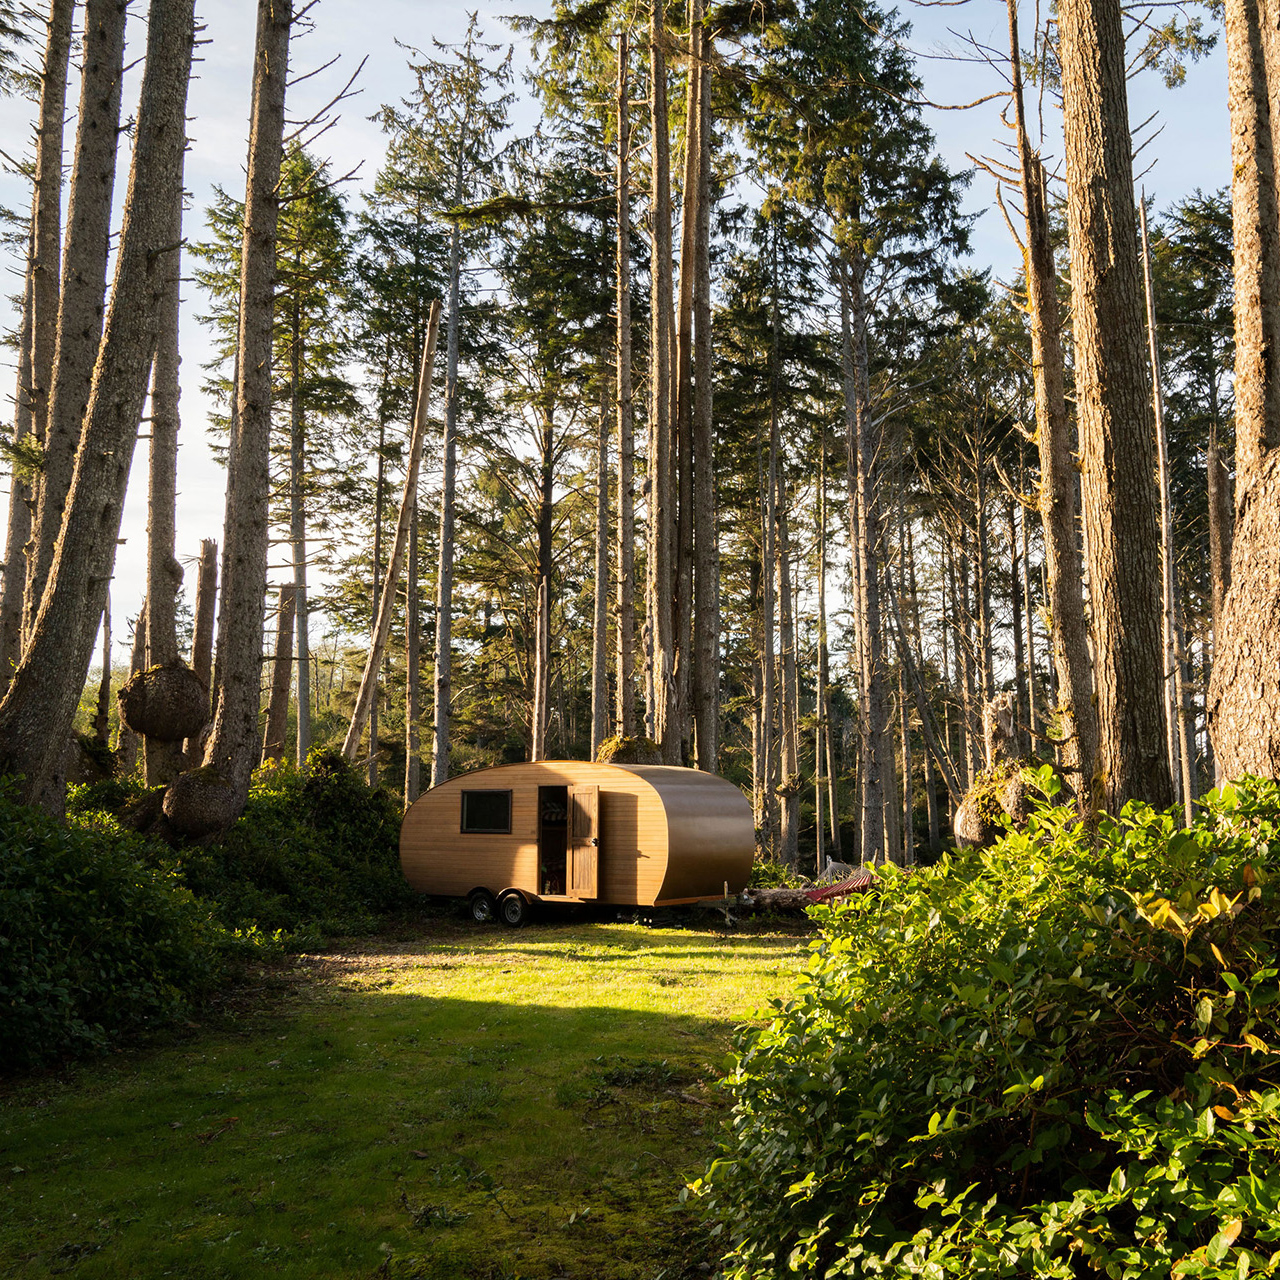 mobile mini-cabin in Olympic National Park near Seattle